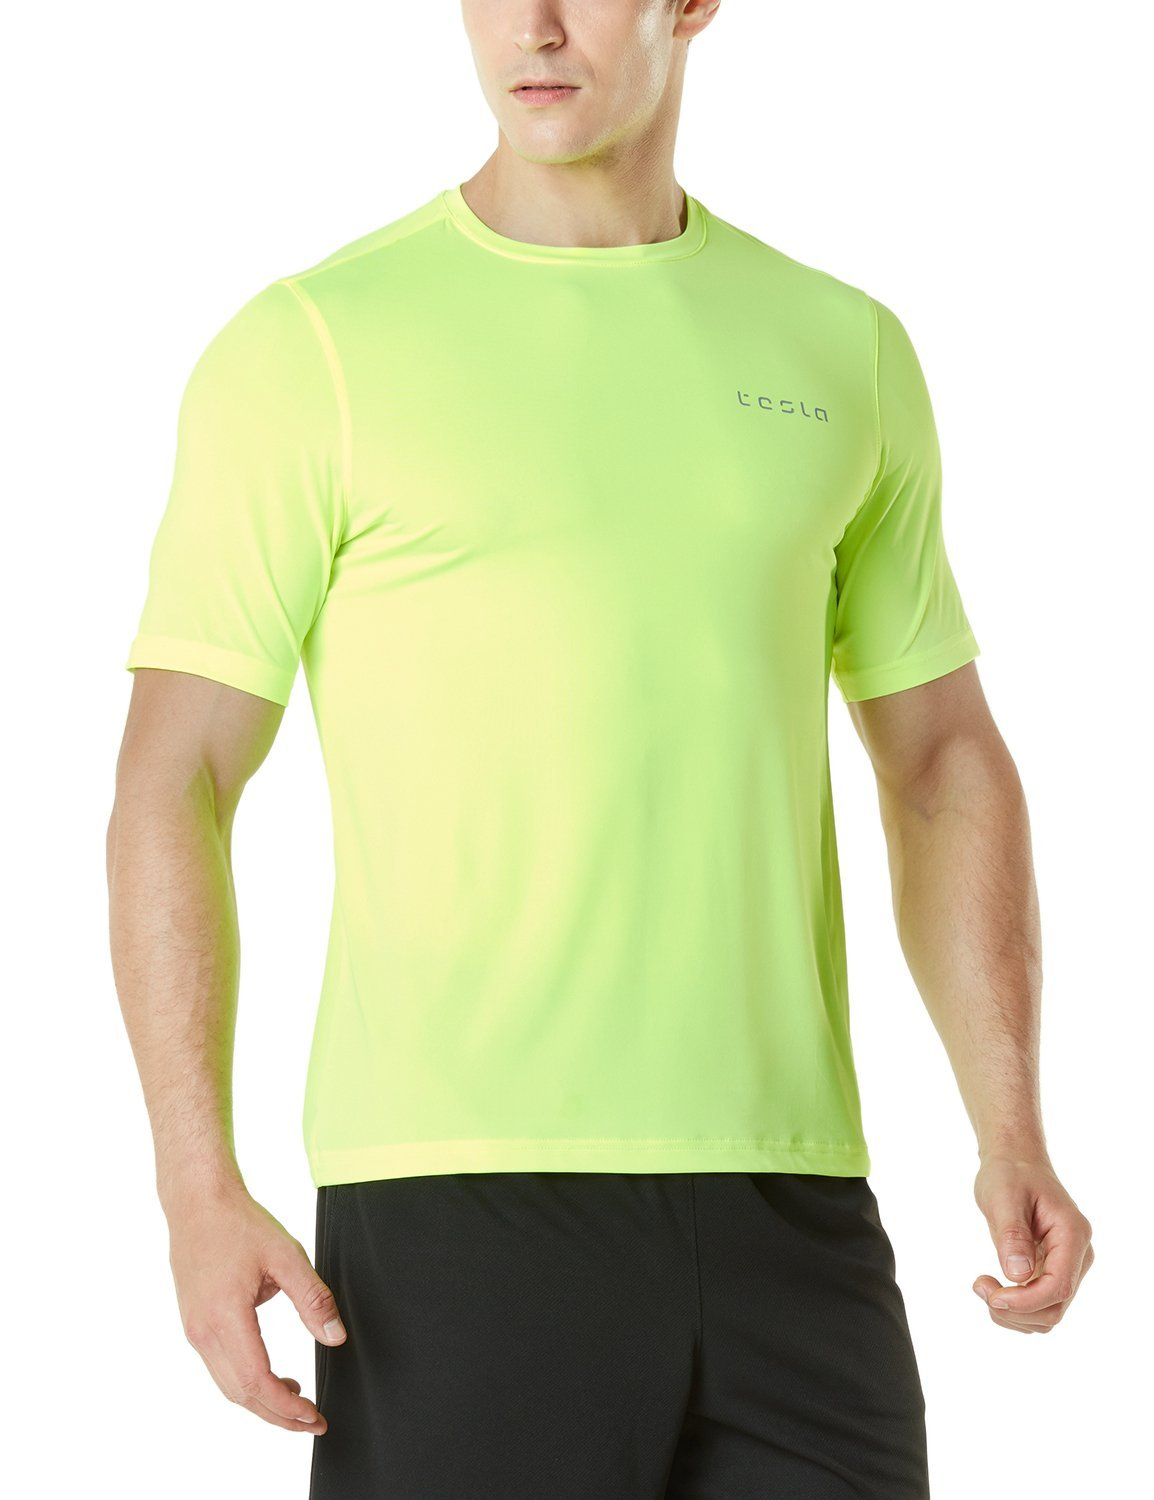 Tesla Men & Women's HyperDri Short Sleeve T-Shirt Athletic Cool Running Top MTS Series